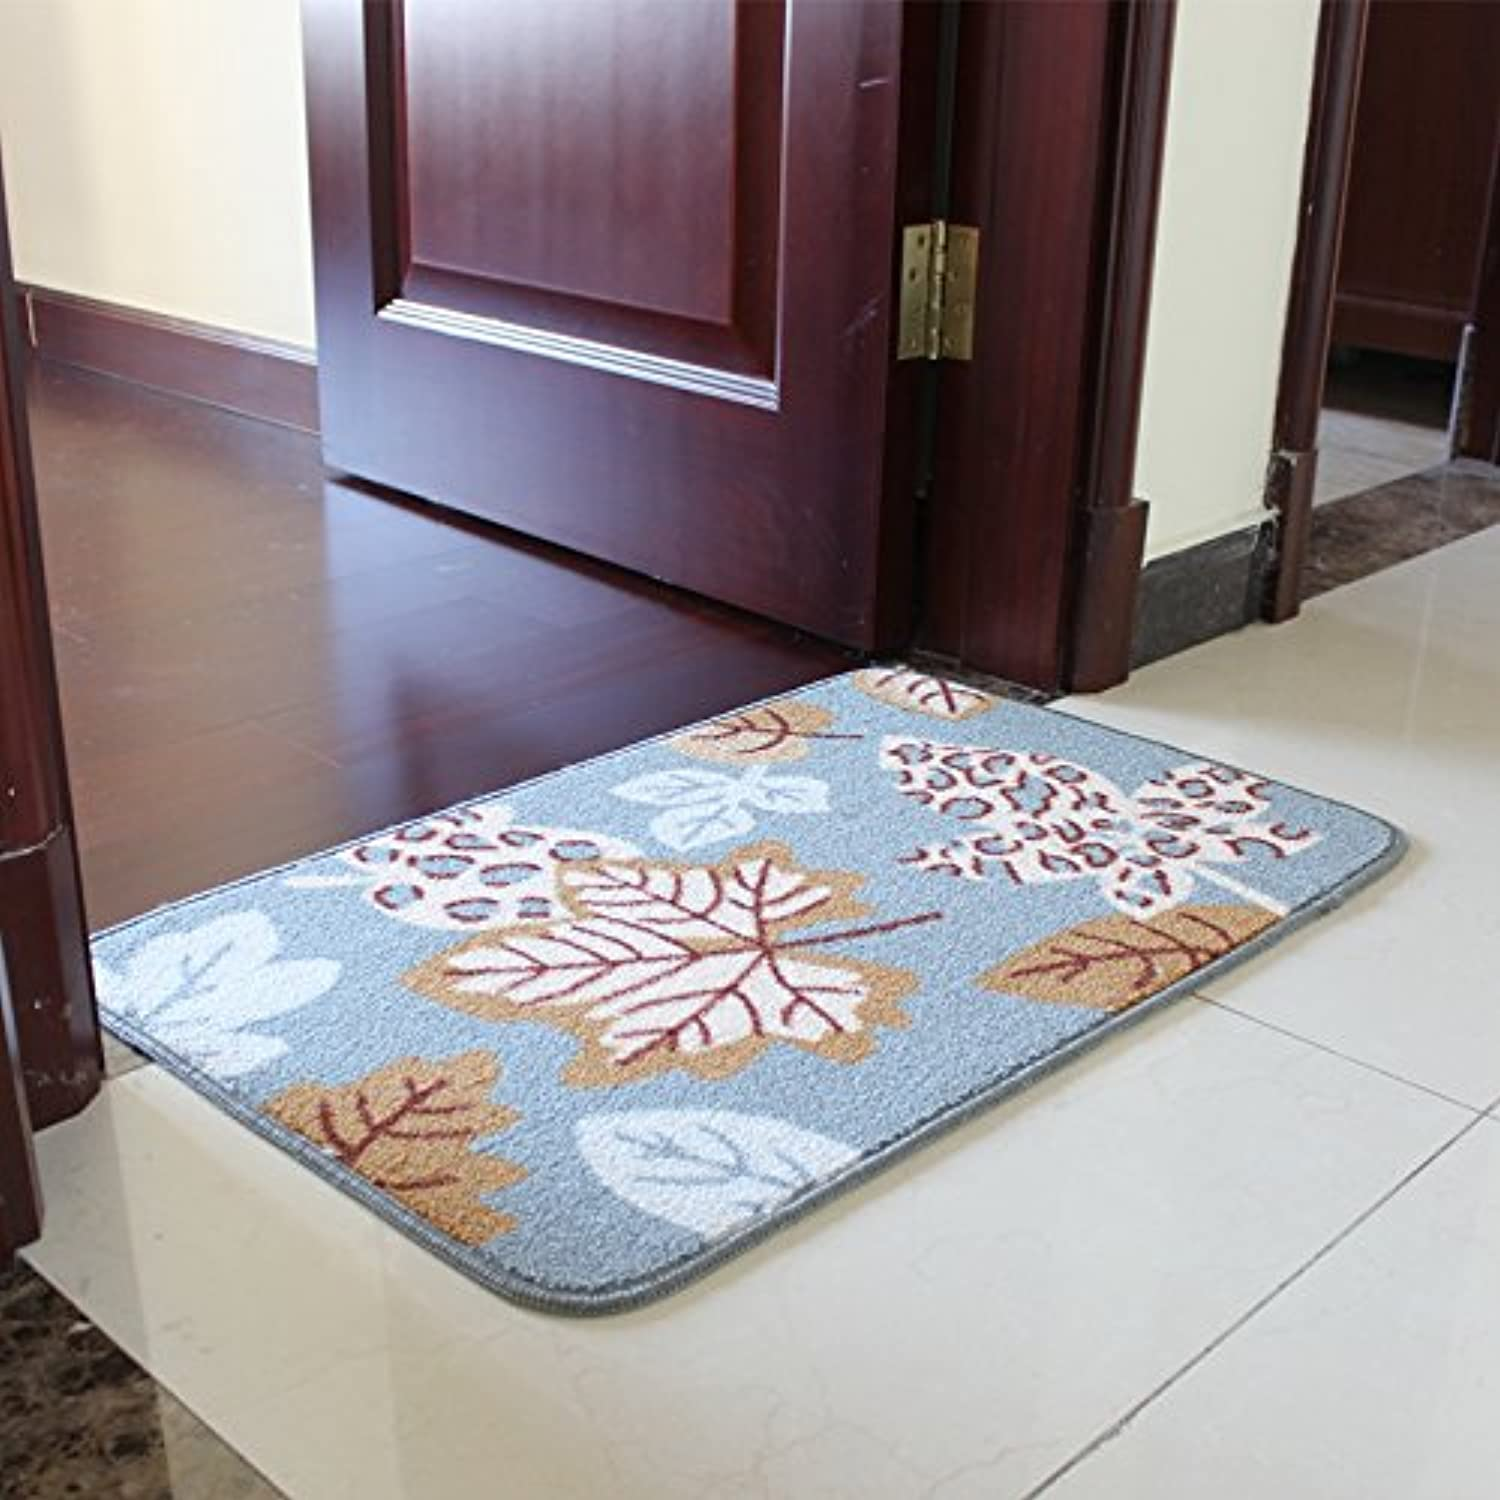 JinYiDian'Shop-Thick Mats Feet Bedroom Pvc Anti-Slip Pad Kitchen Door Mat ,5080Cm,A